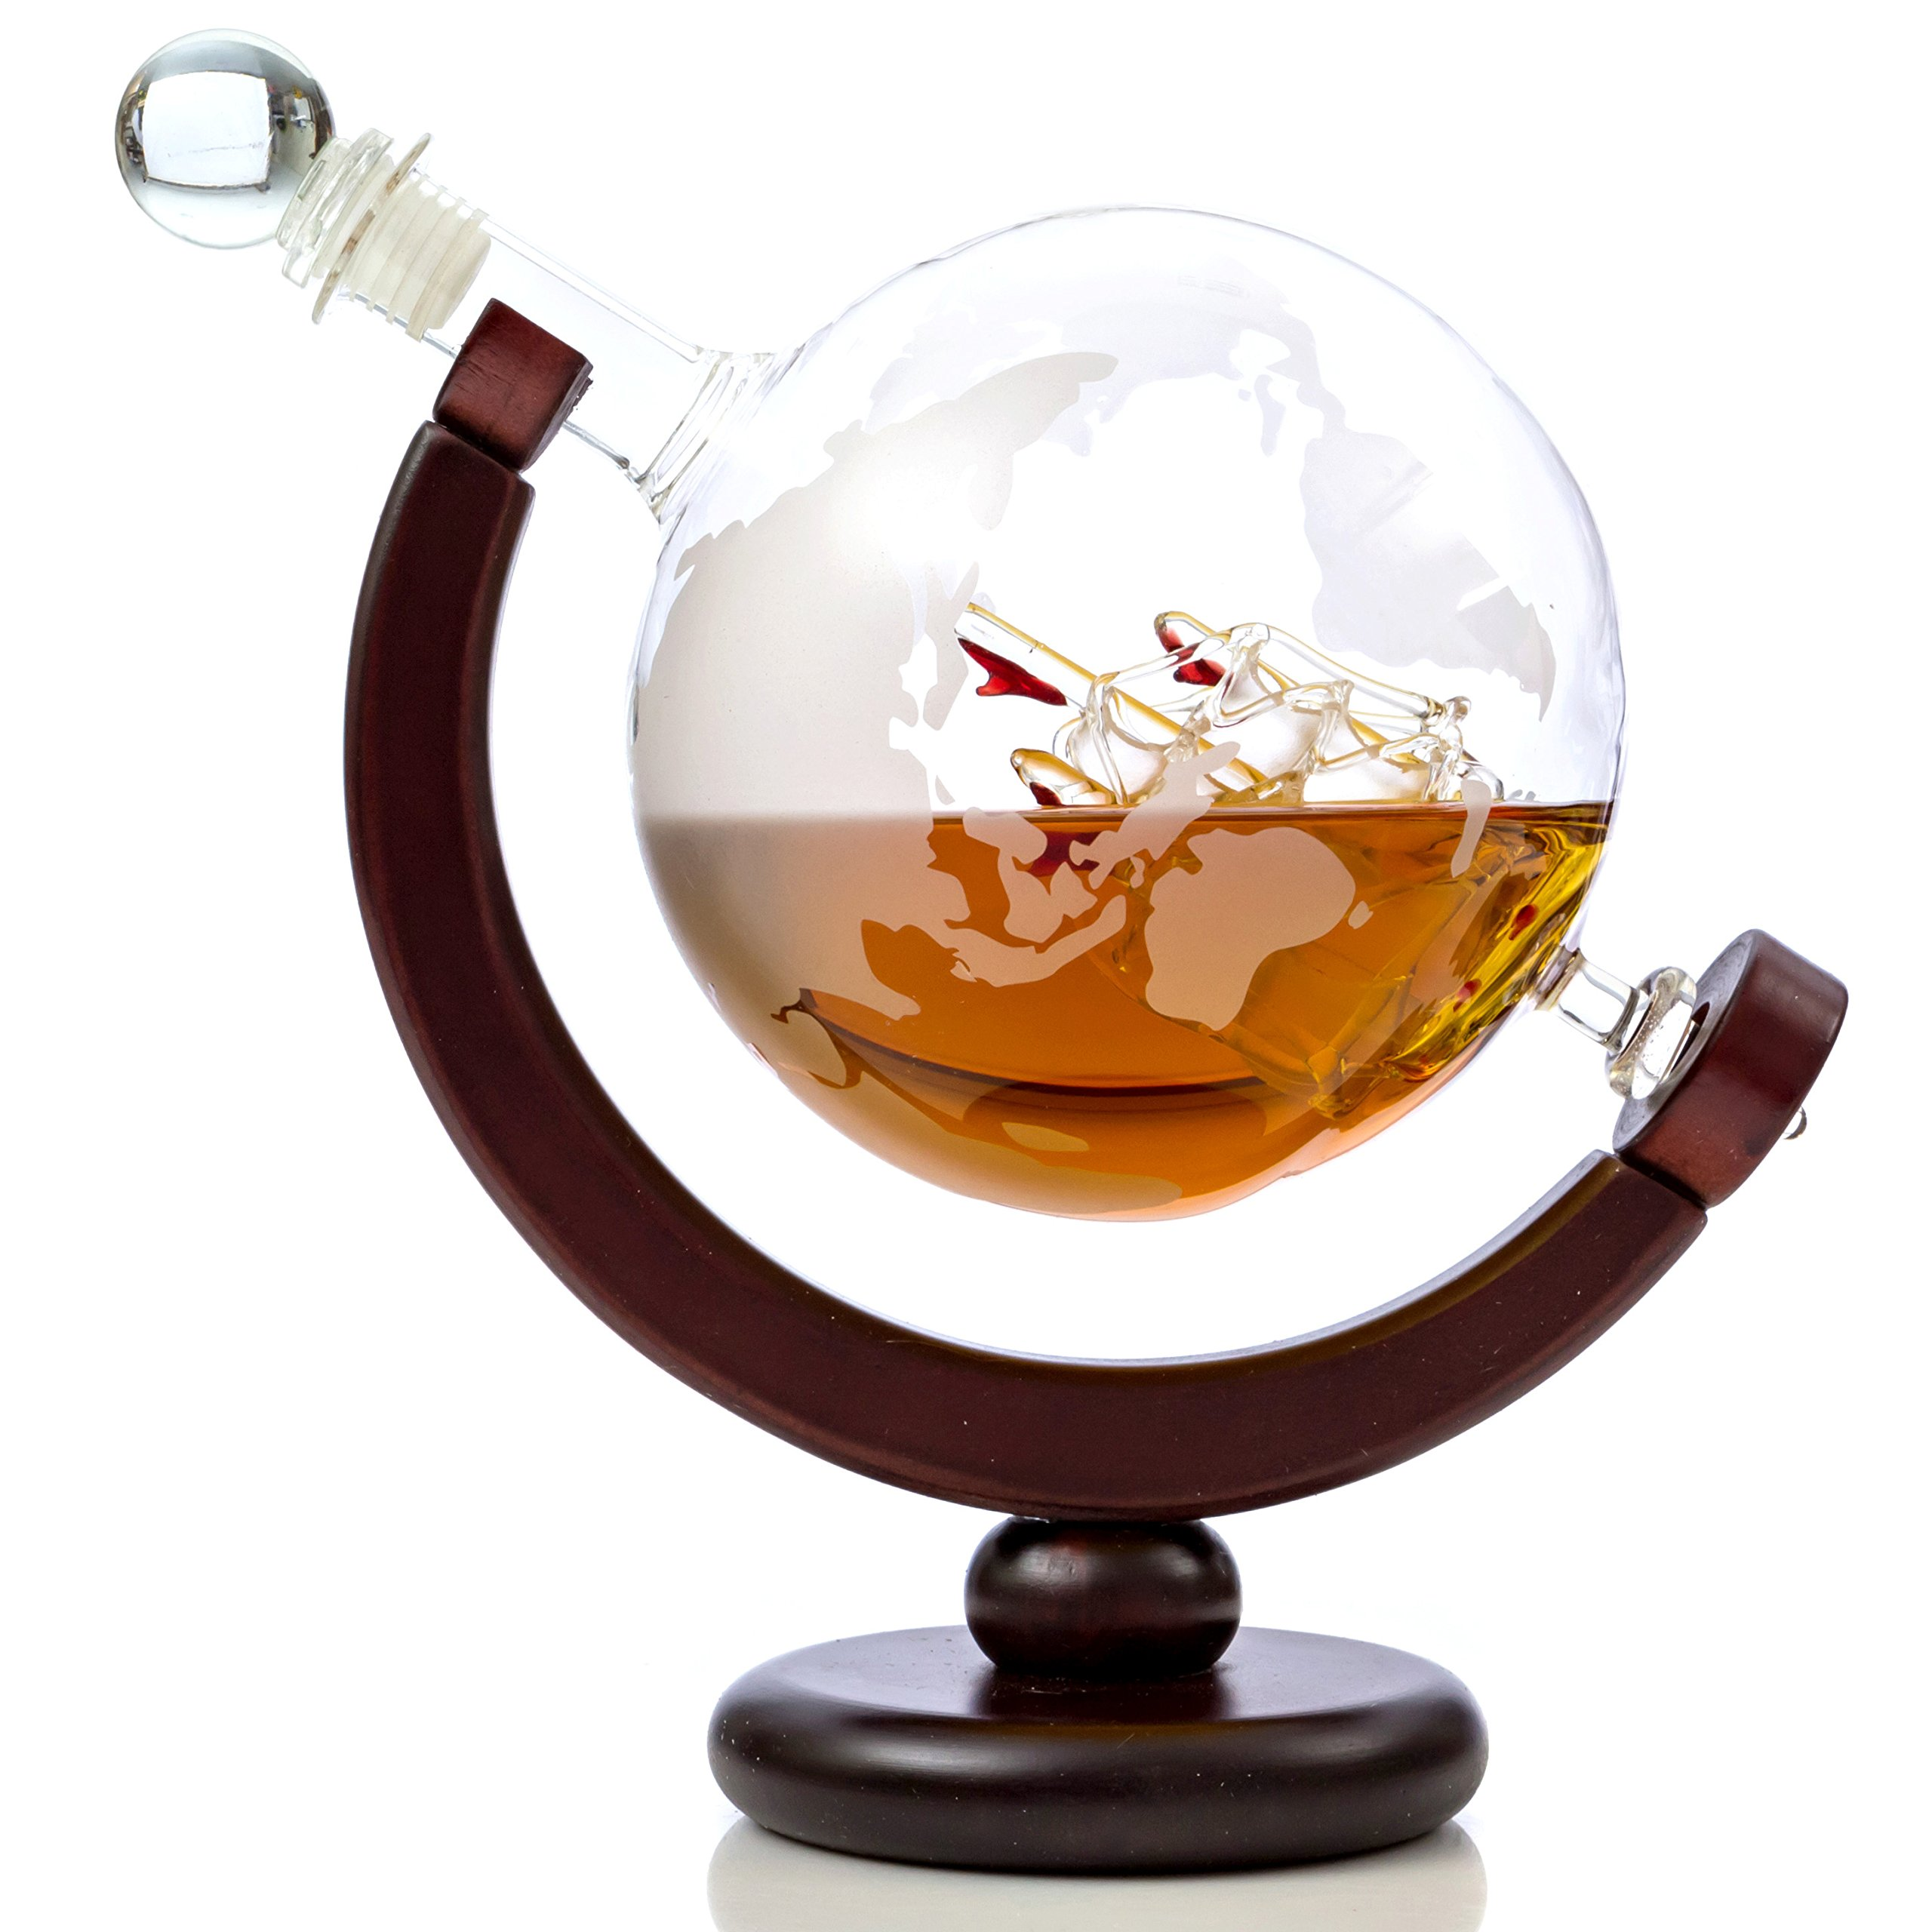 Whiskey Globe Decanter Set with Etched World Map and Antique Ship - Wooden Base and Safe Package - Perfect Gift Set for Liquor, Scotch, Bourbon, Vodka and Wine by Kemstood